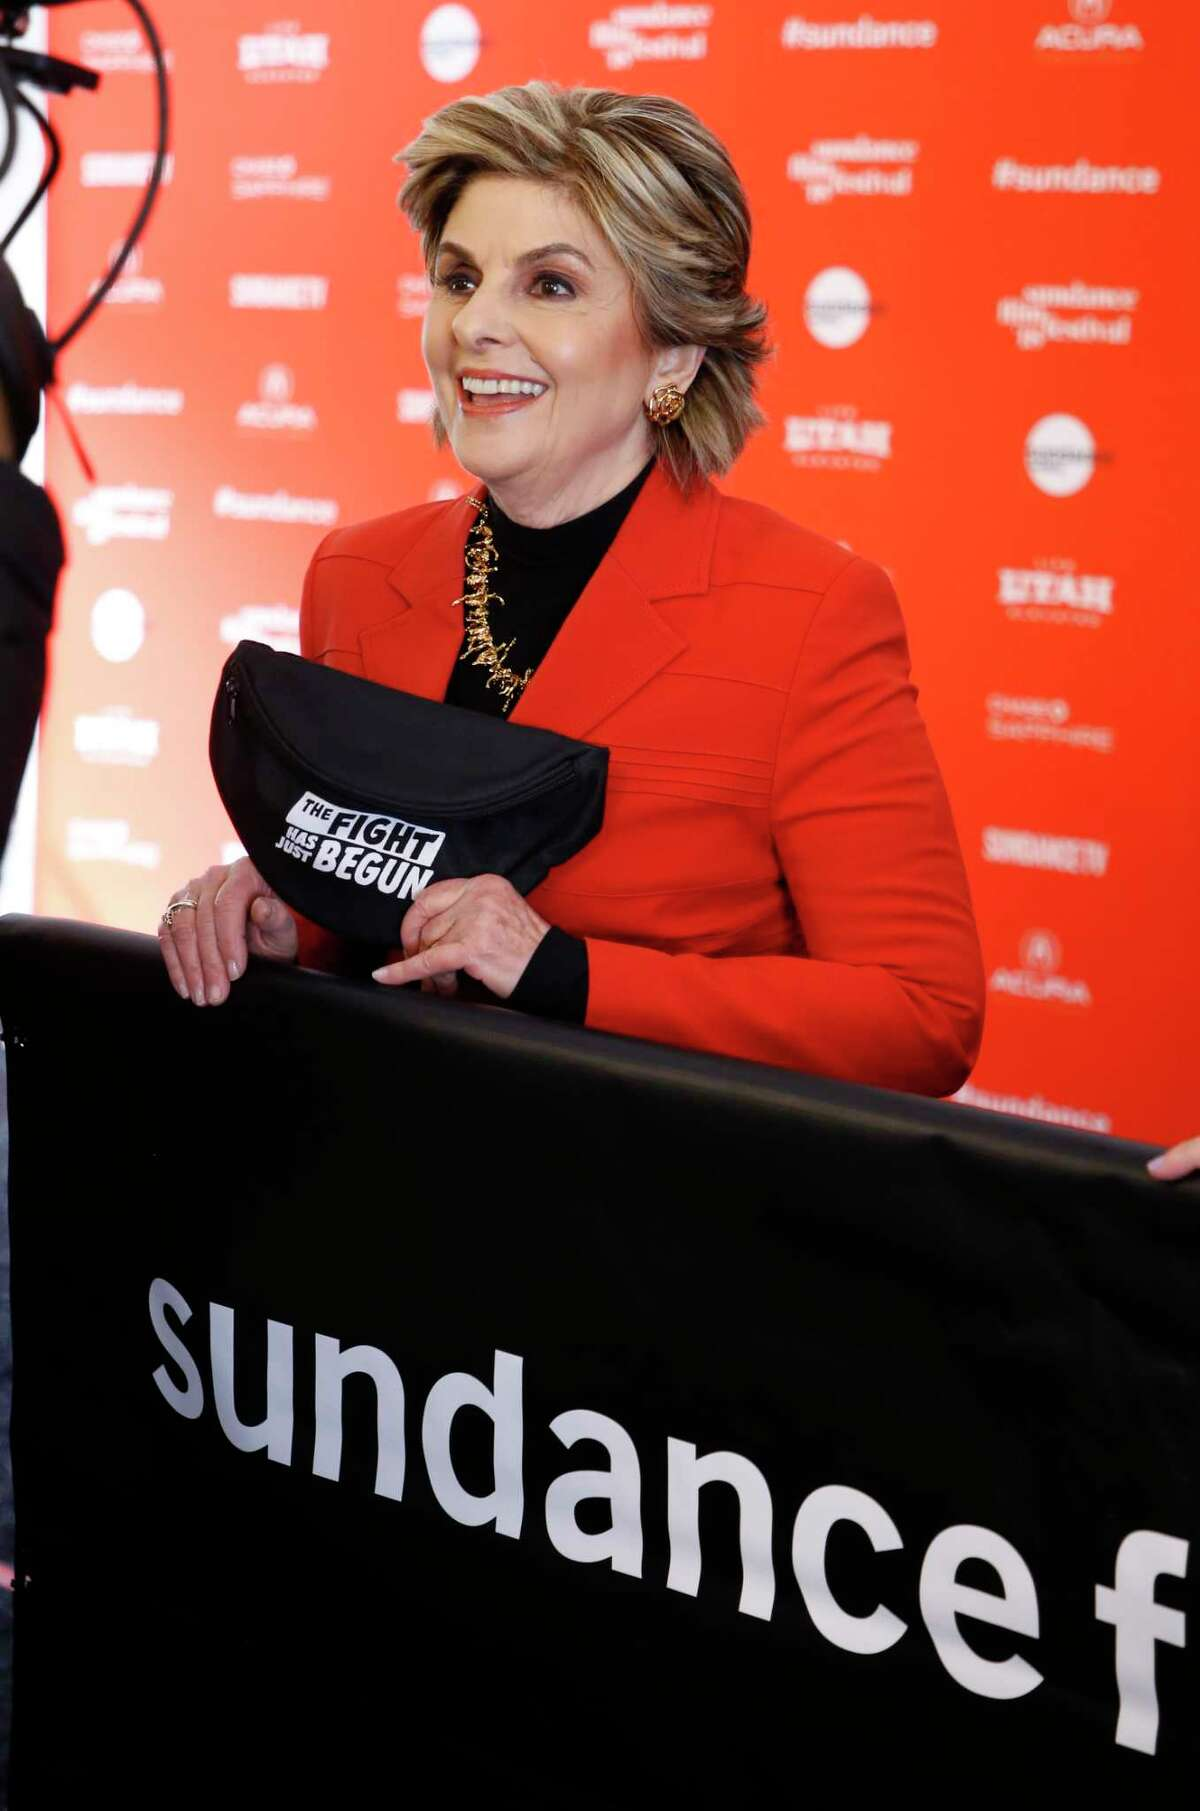 """Attorney Gloria Allred is interviewed at the premiere of """"Seeing Allred"""" during the 2018 Sundance Film Festival on Sunday, Jan. 21, 2018, in Park City, Utah. (Photo by Danny Moloshok/Invision/AP)"""